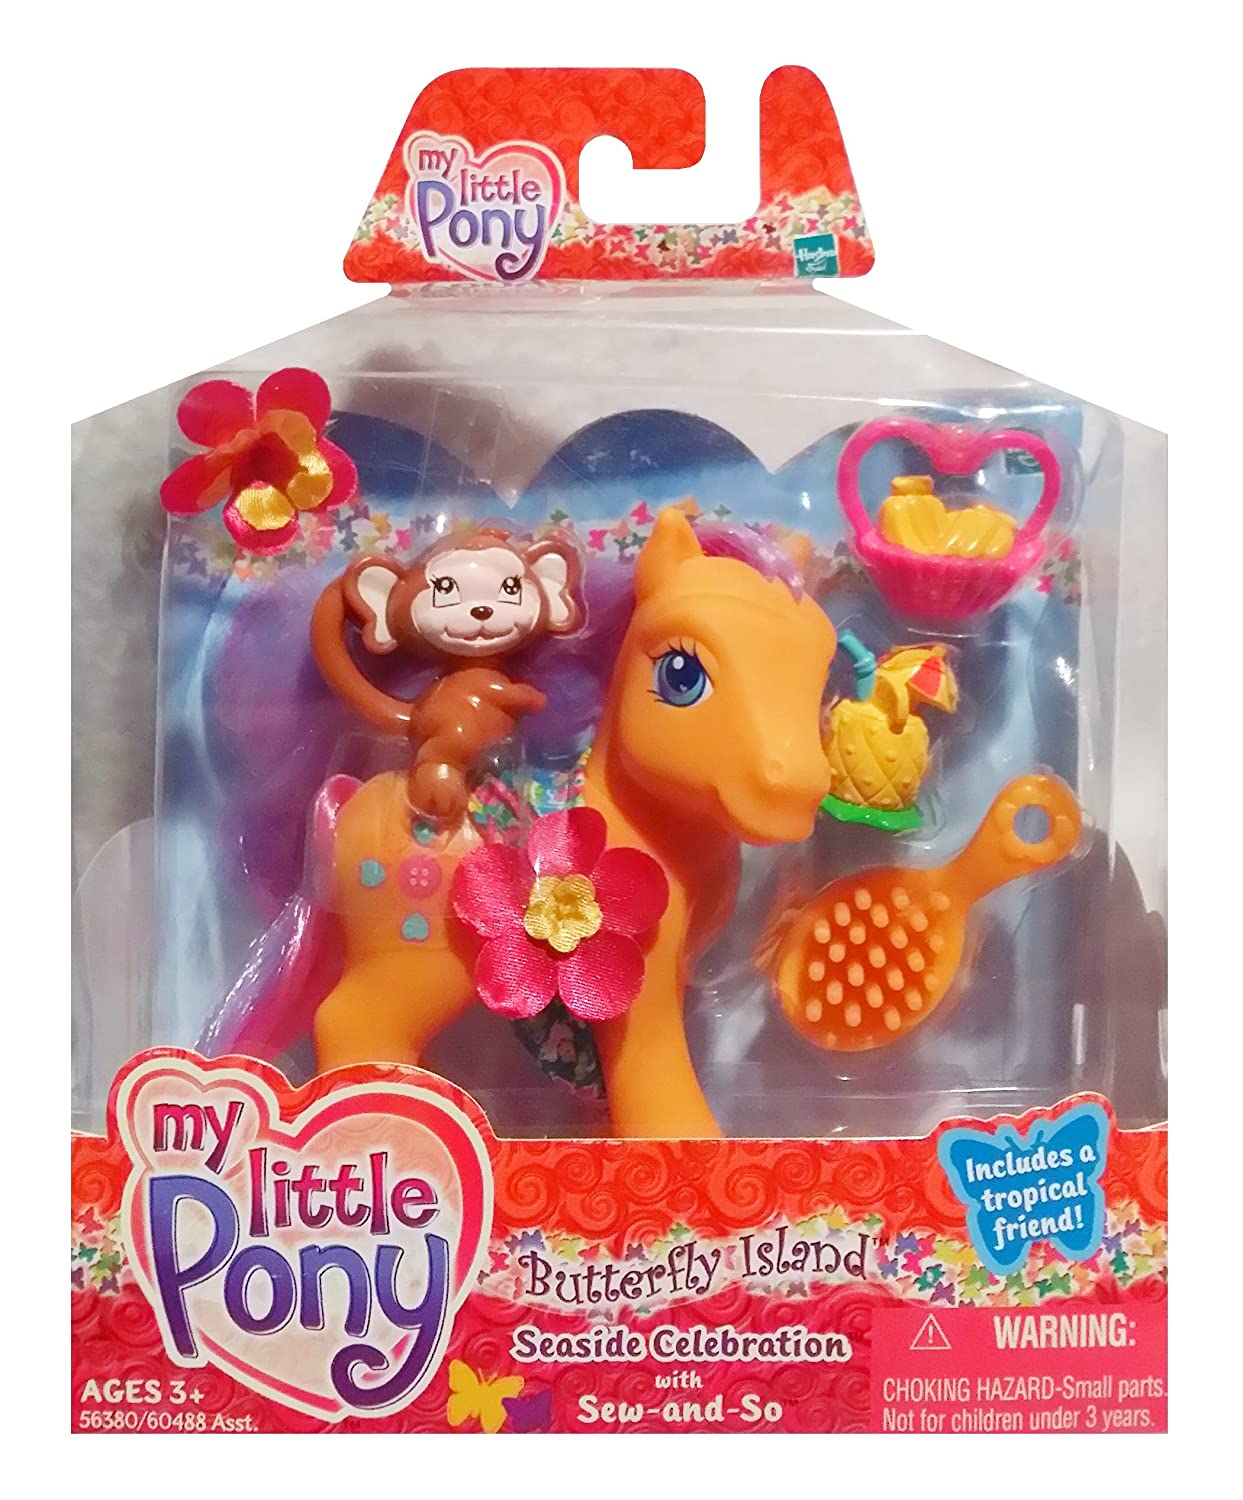 My Little Pony: Butterfly Island Seaside Celebration - Sew-And-So